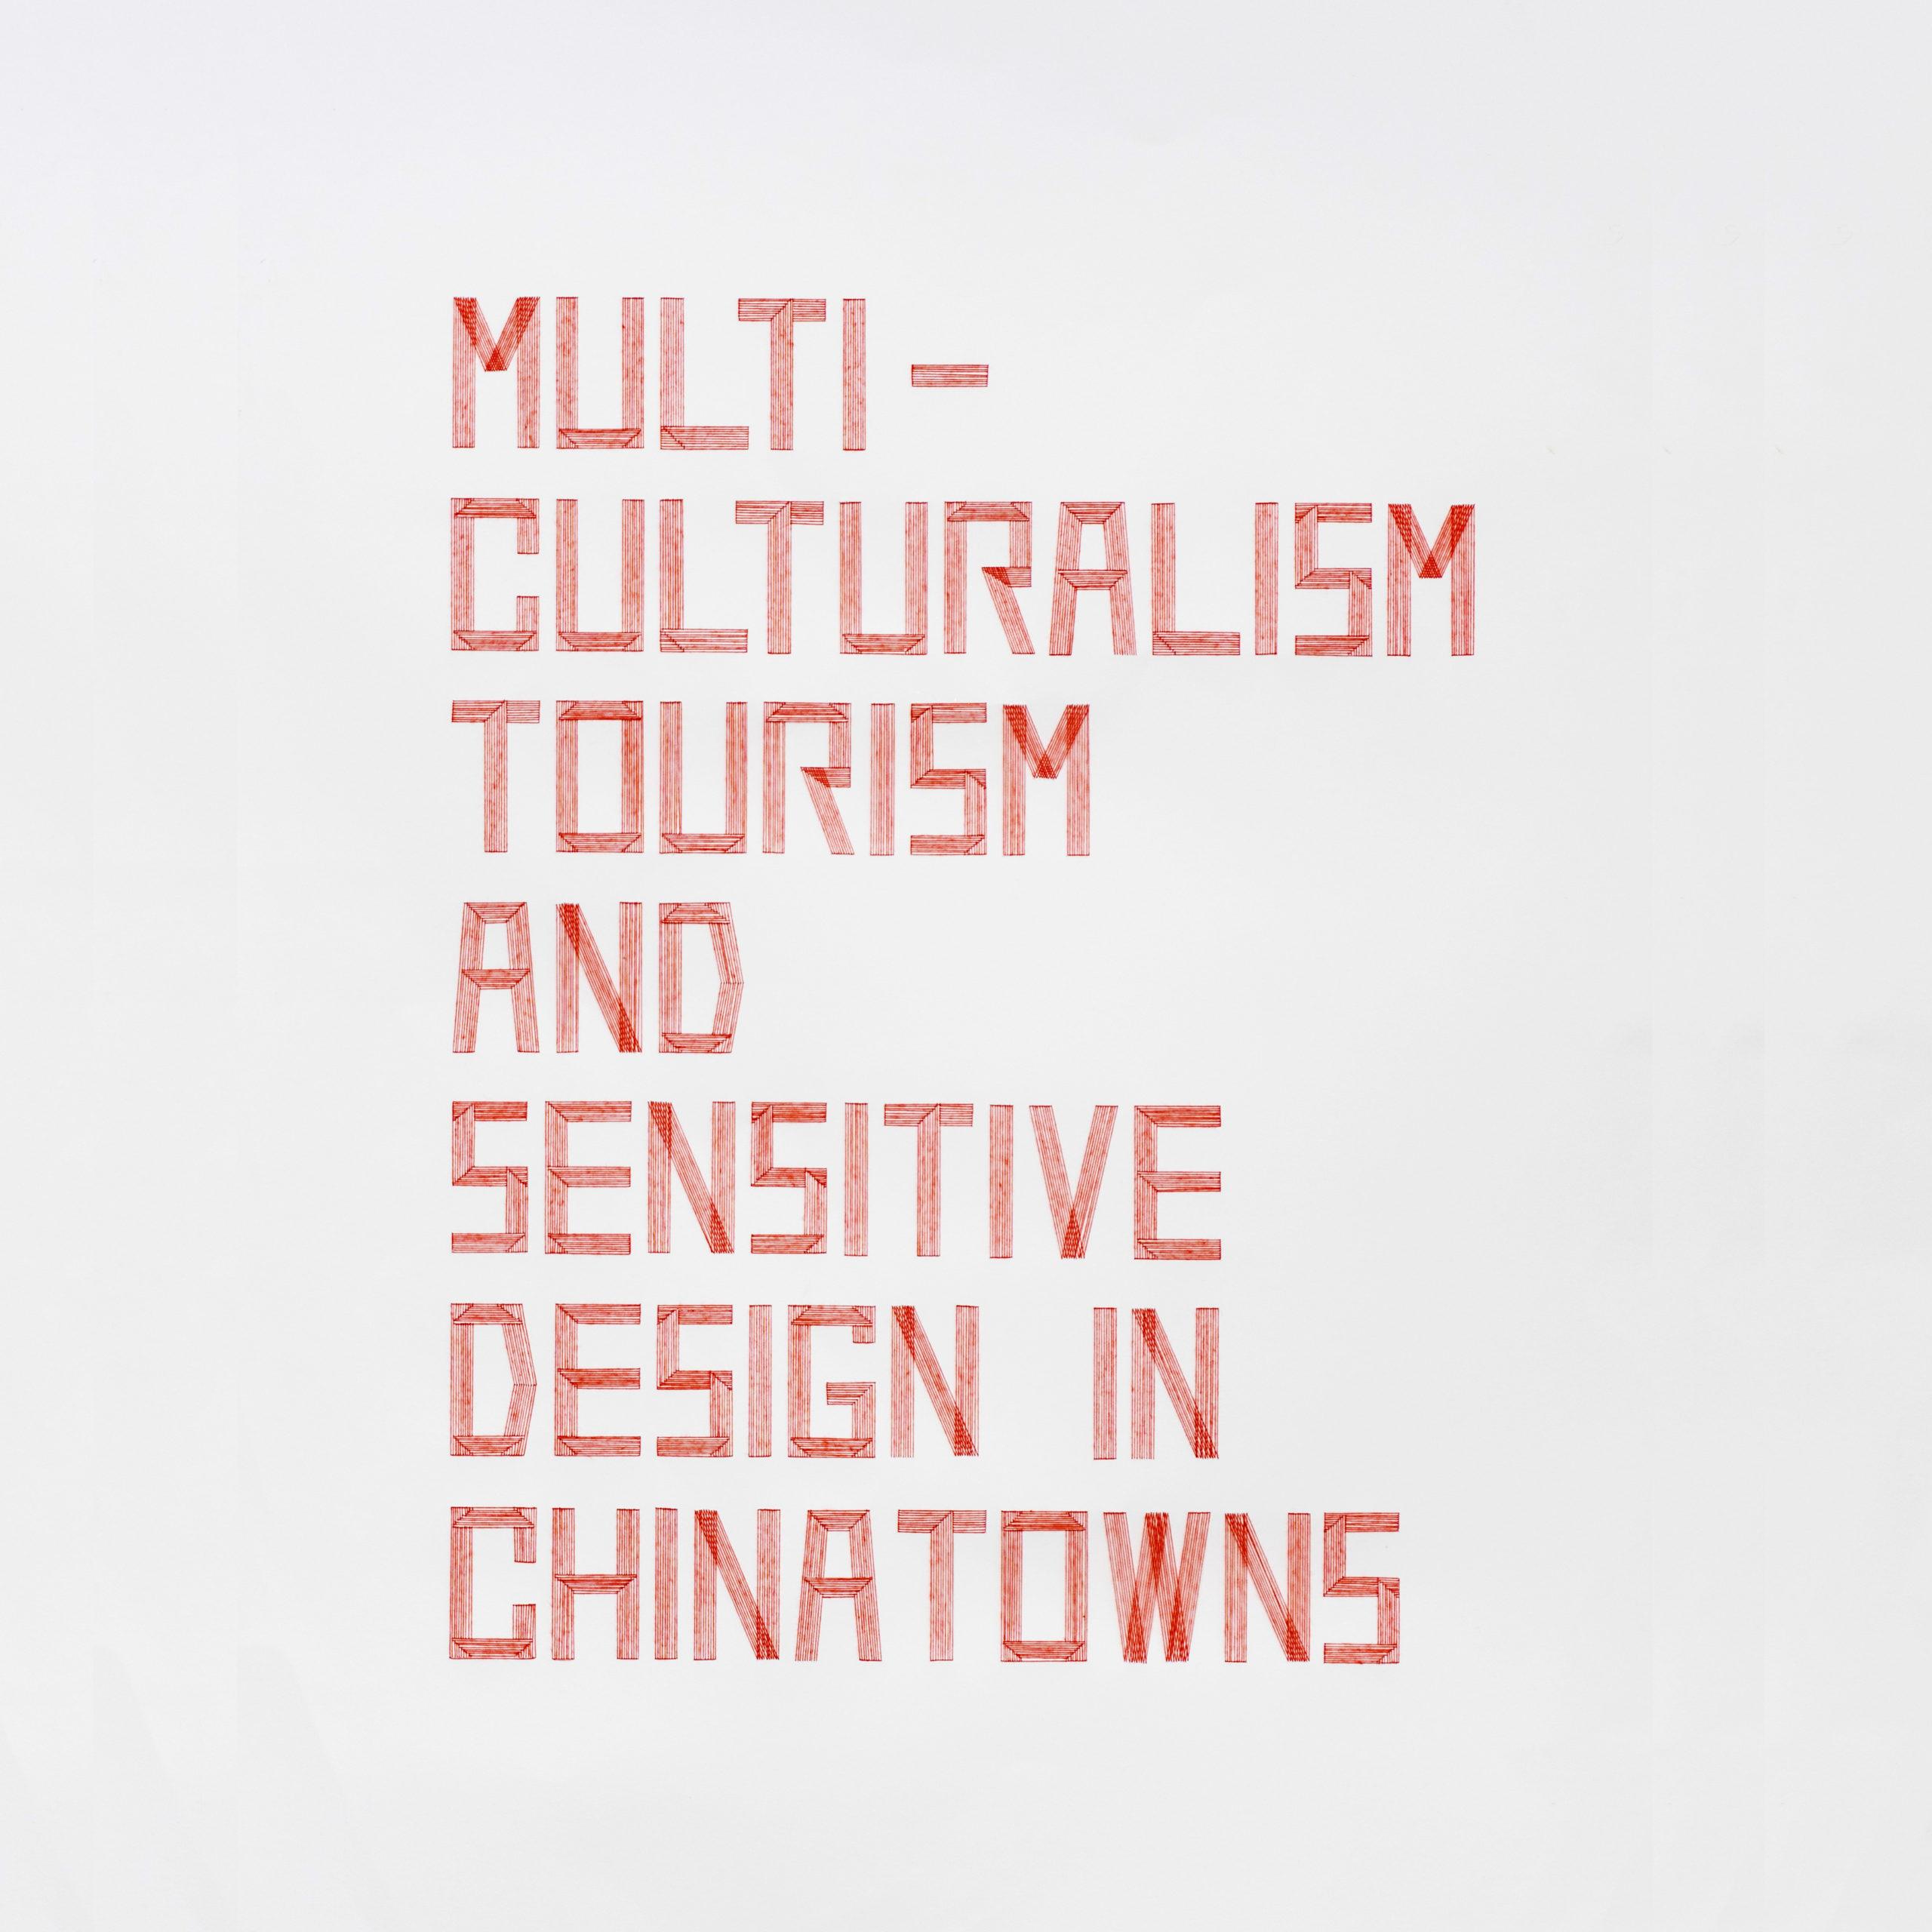 Multiculturalism Tourism and Sensitive Design in Chinatowns - Yanqiao Jiang